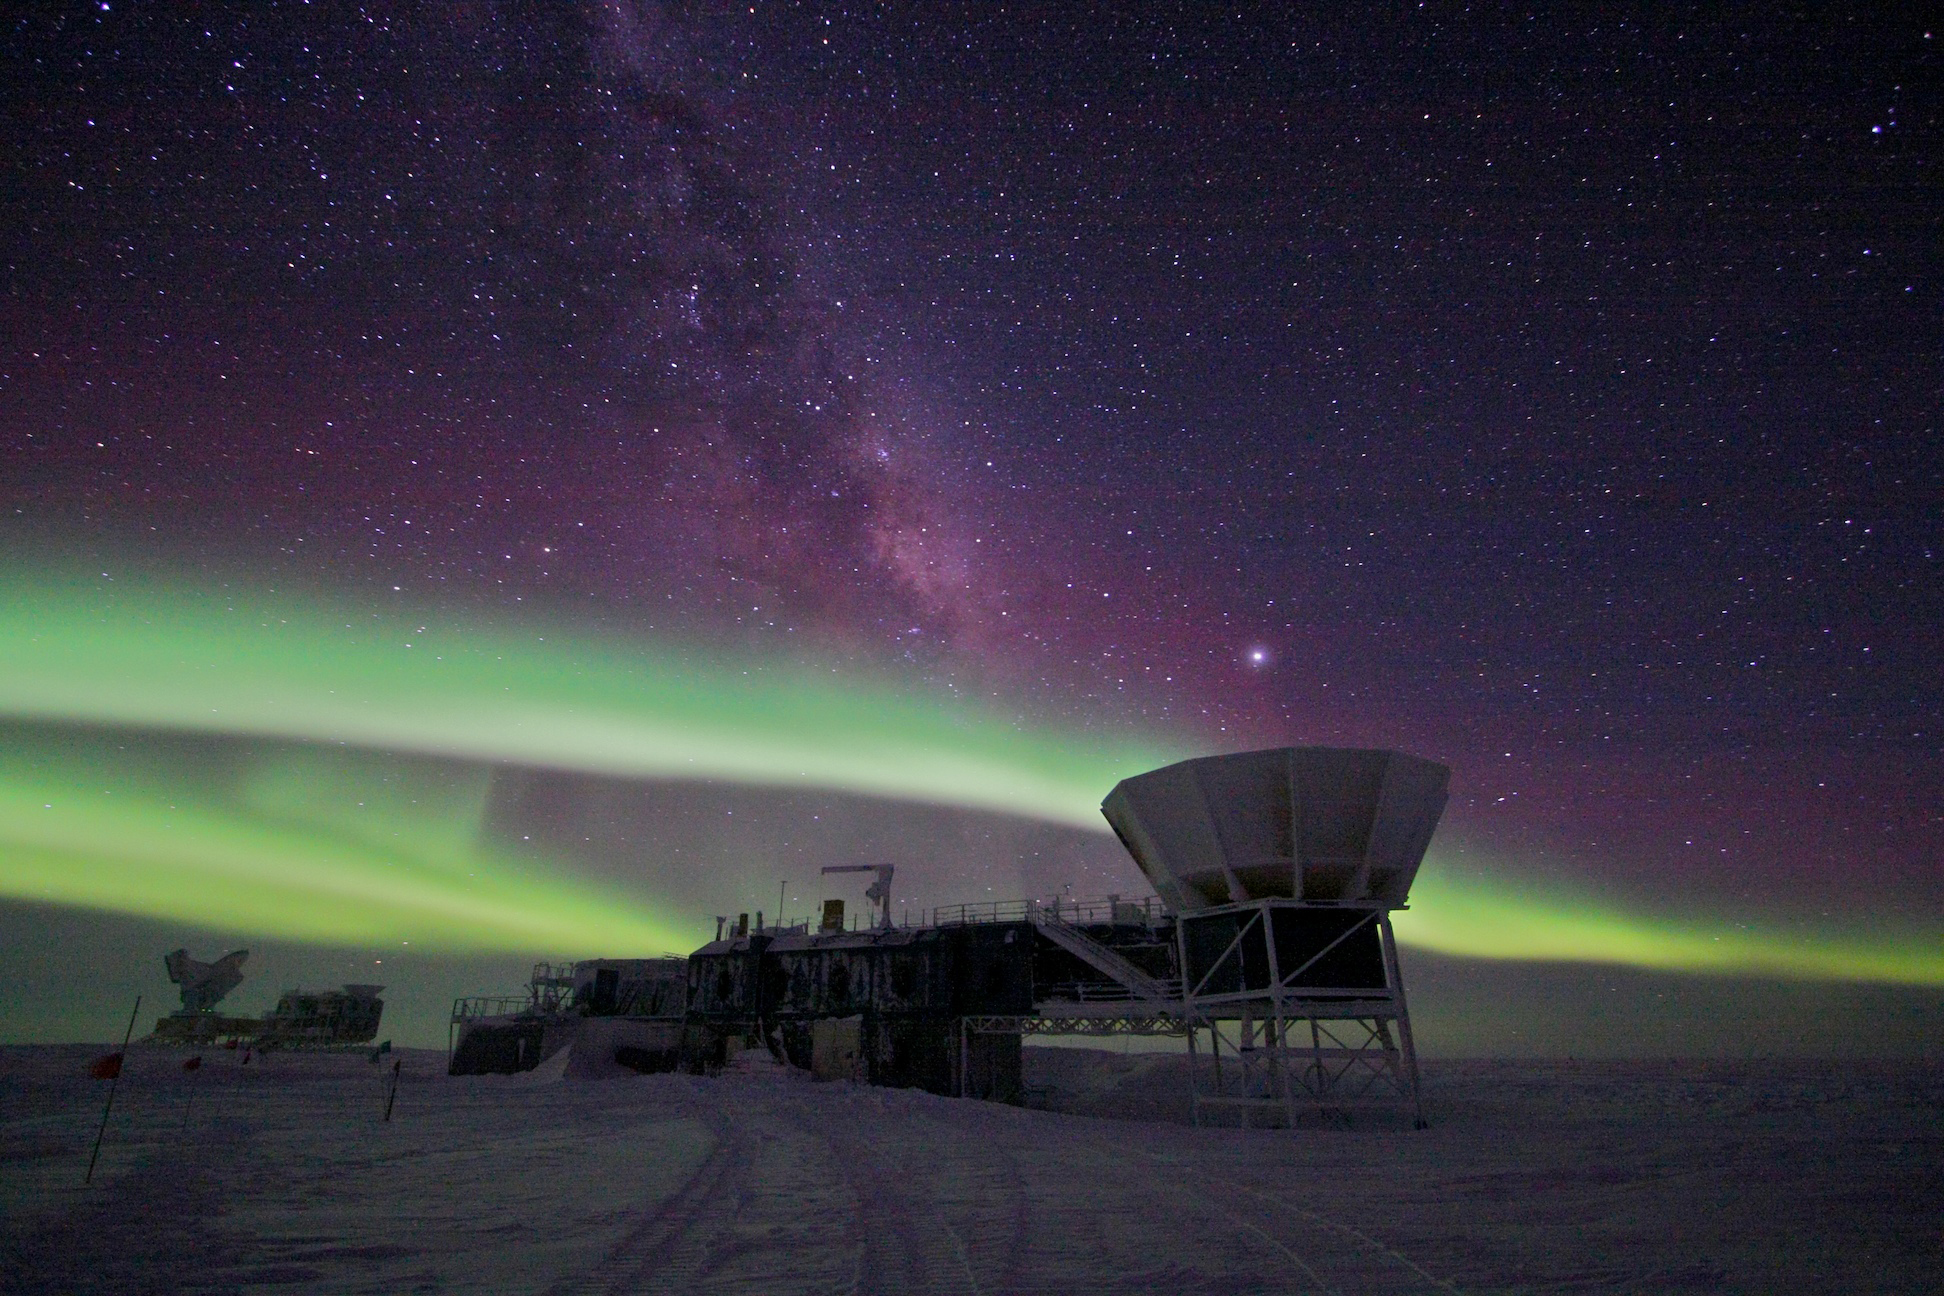 Auroras in the night sky over a science building and telescope at the U.S. research station at the geographic South Pole.